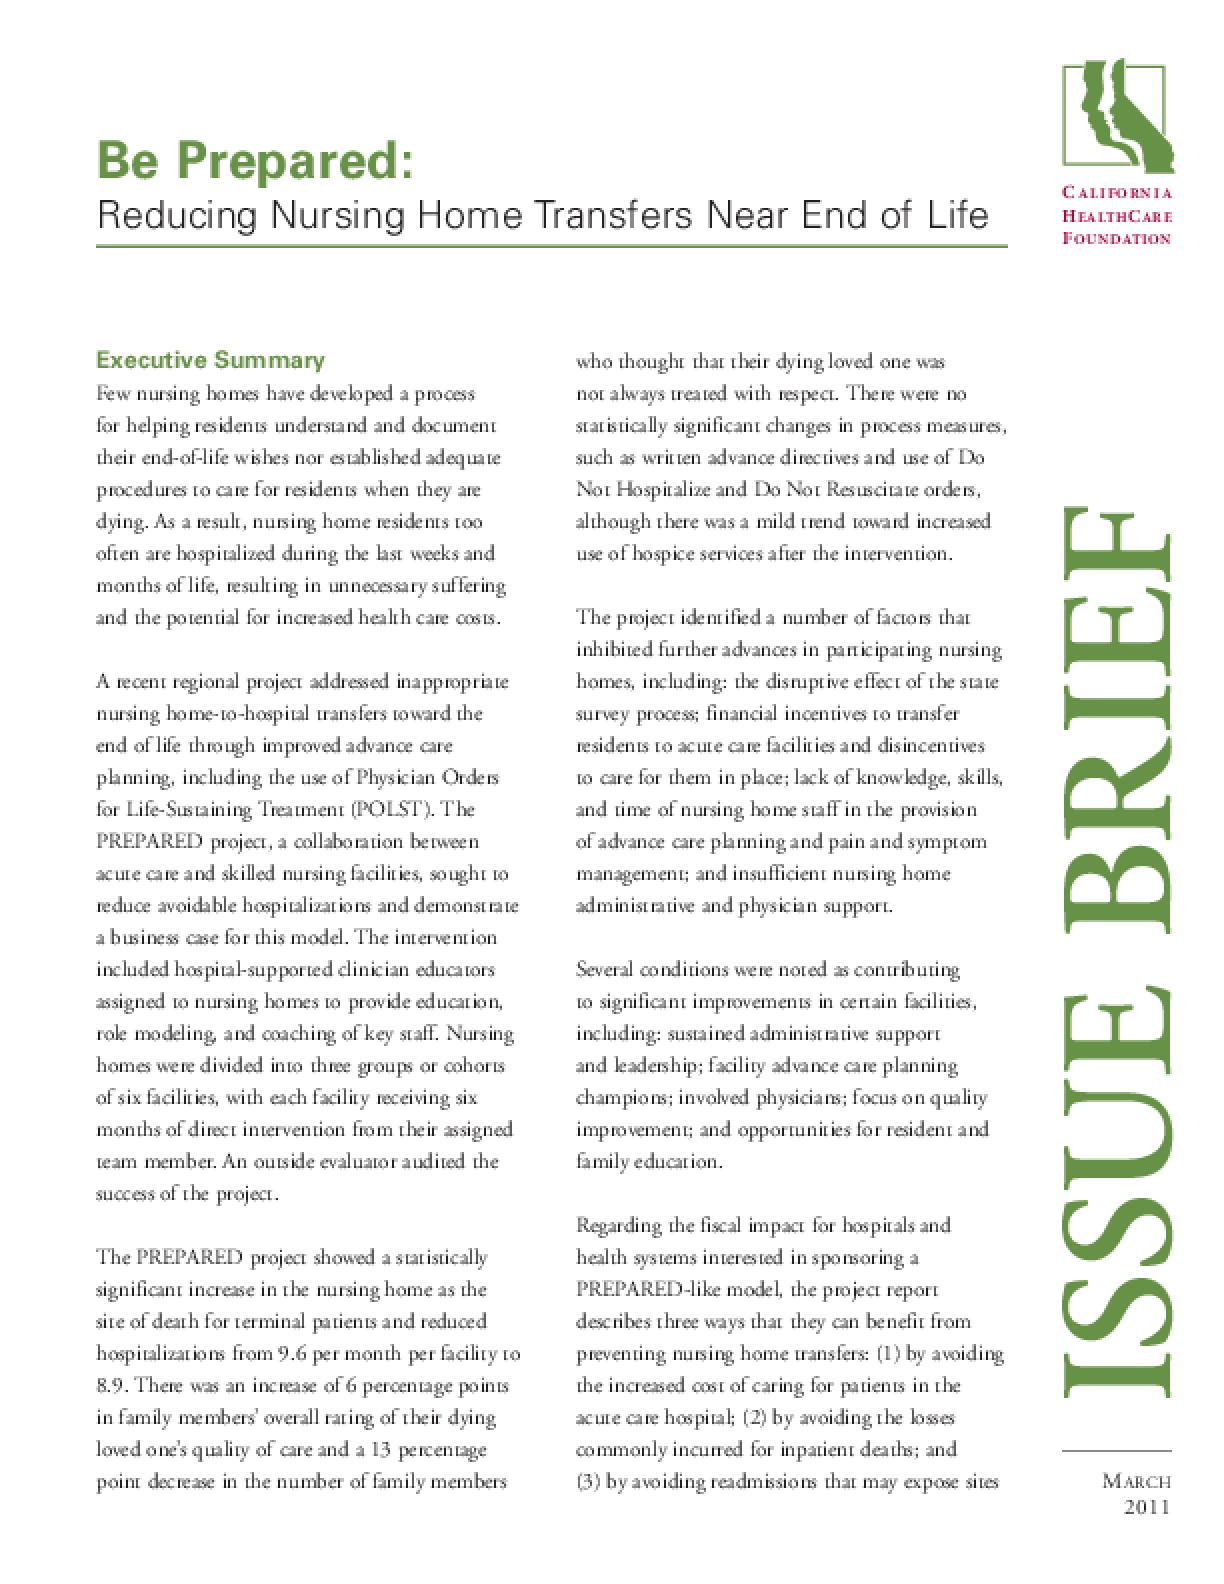 Be Prepared: Reducing Nursing Home Transfers Near End of Life